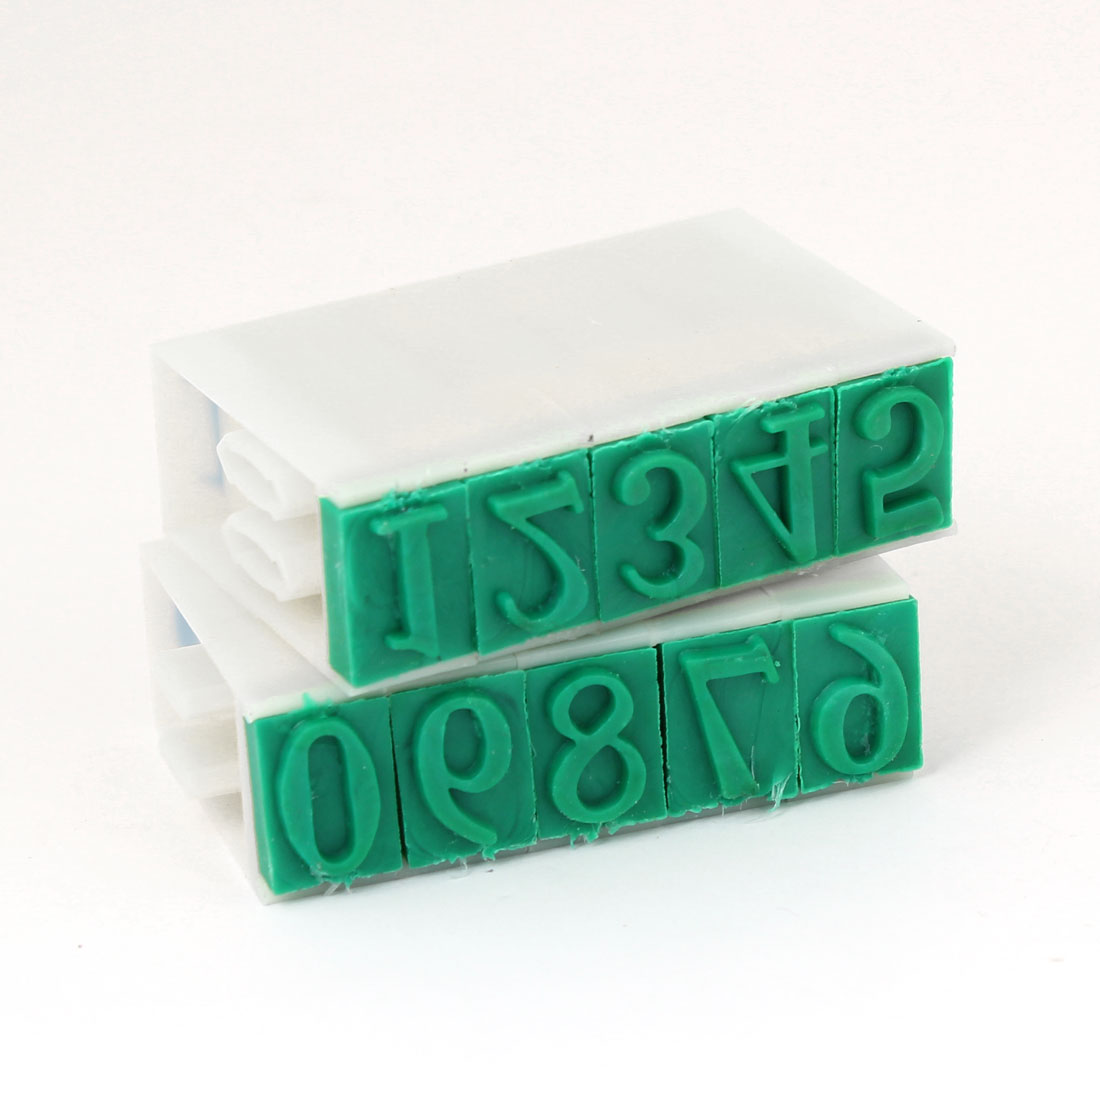 18mm Wide Off White Green Plastic Rubber 0-9 Number Detachable Numbering Stamp